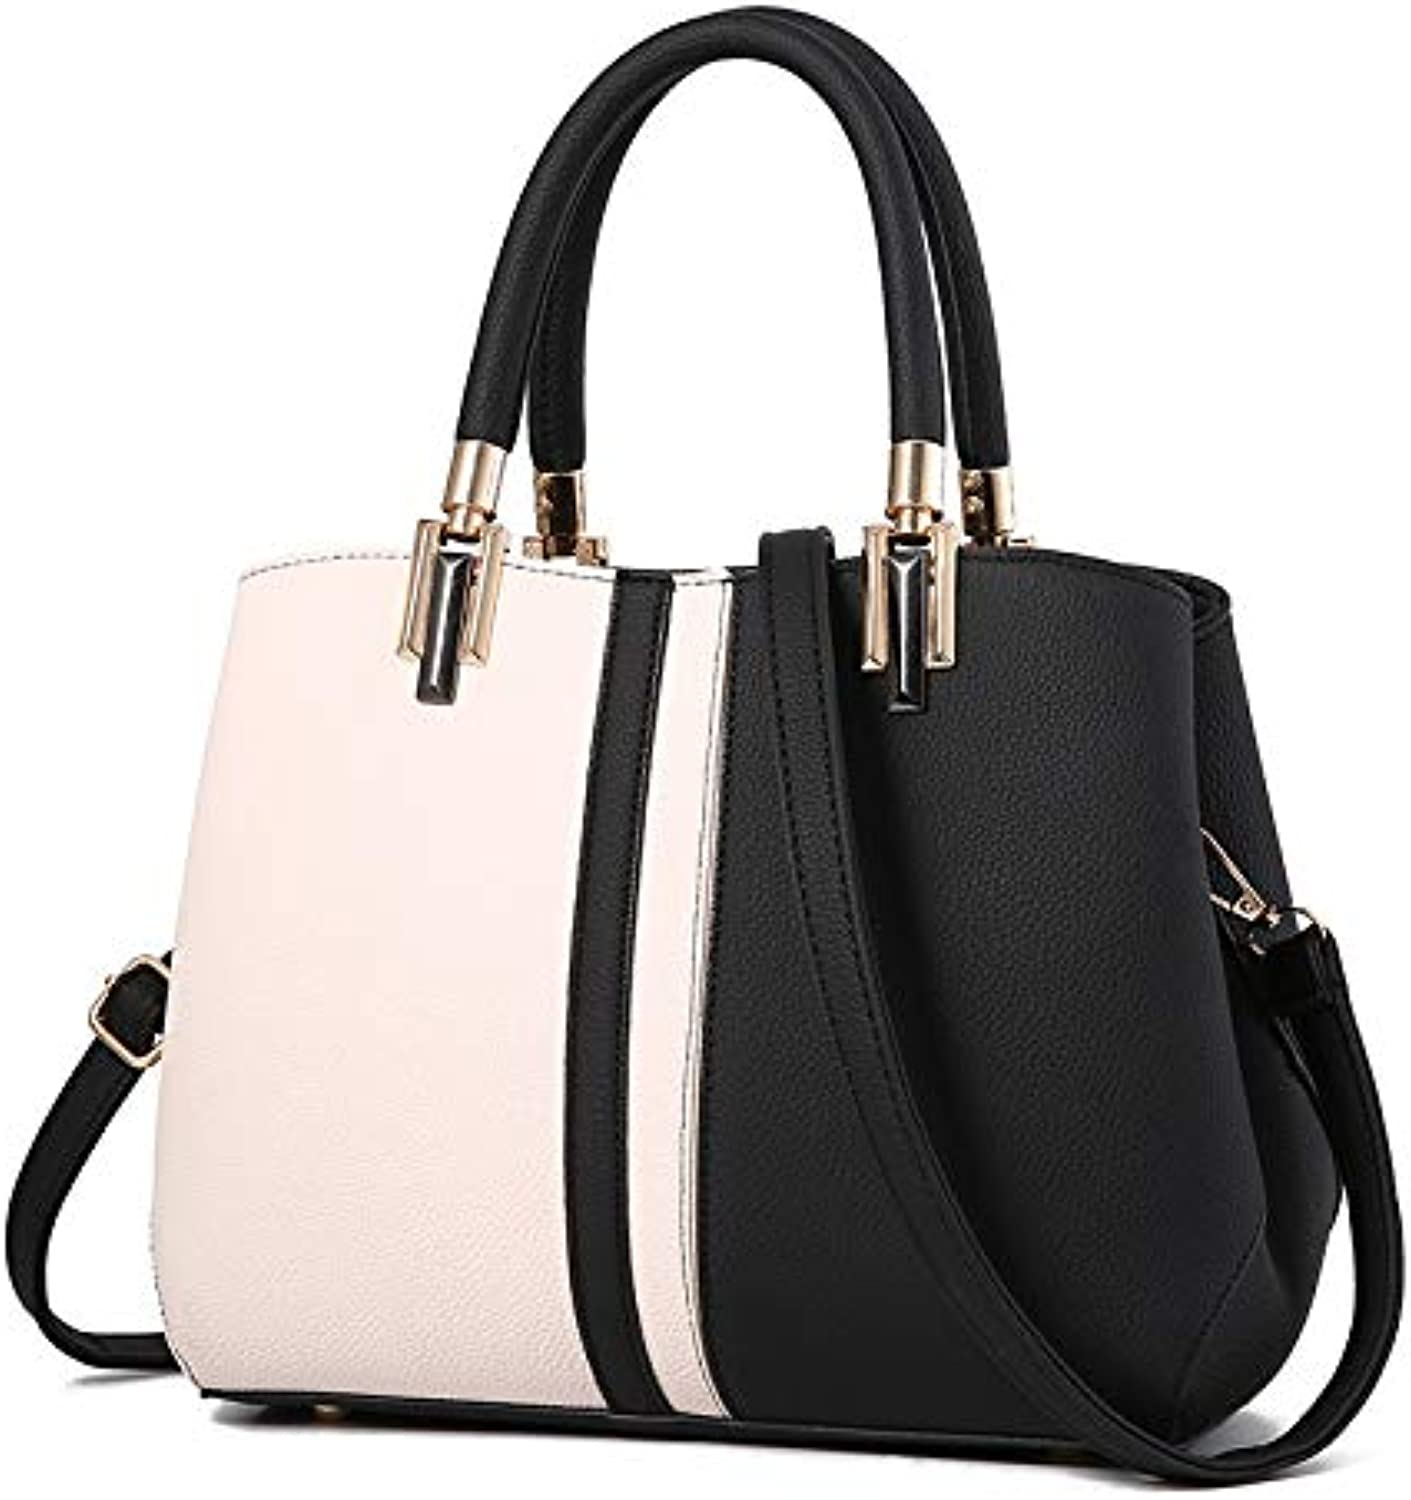 ASHIJIN New Women Bag Striped Black and White Handbag Women Shoulder Bags Handbag Handbags